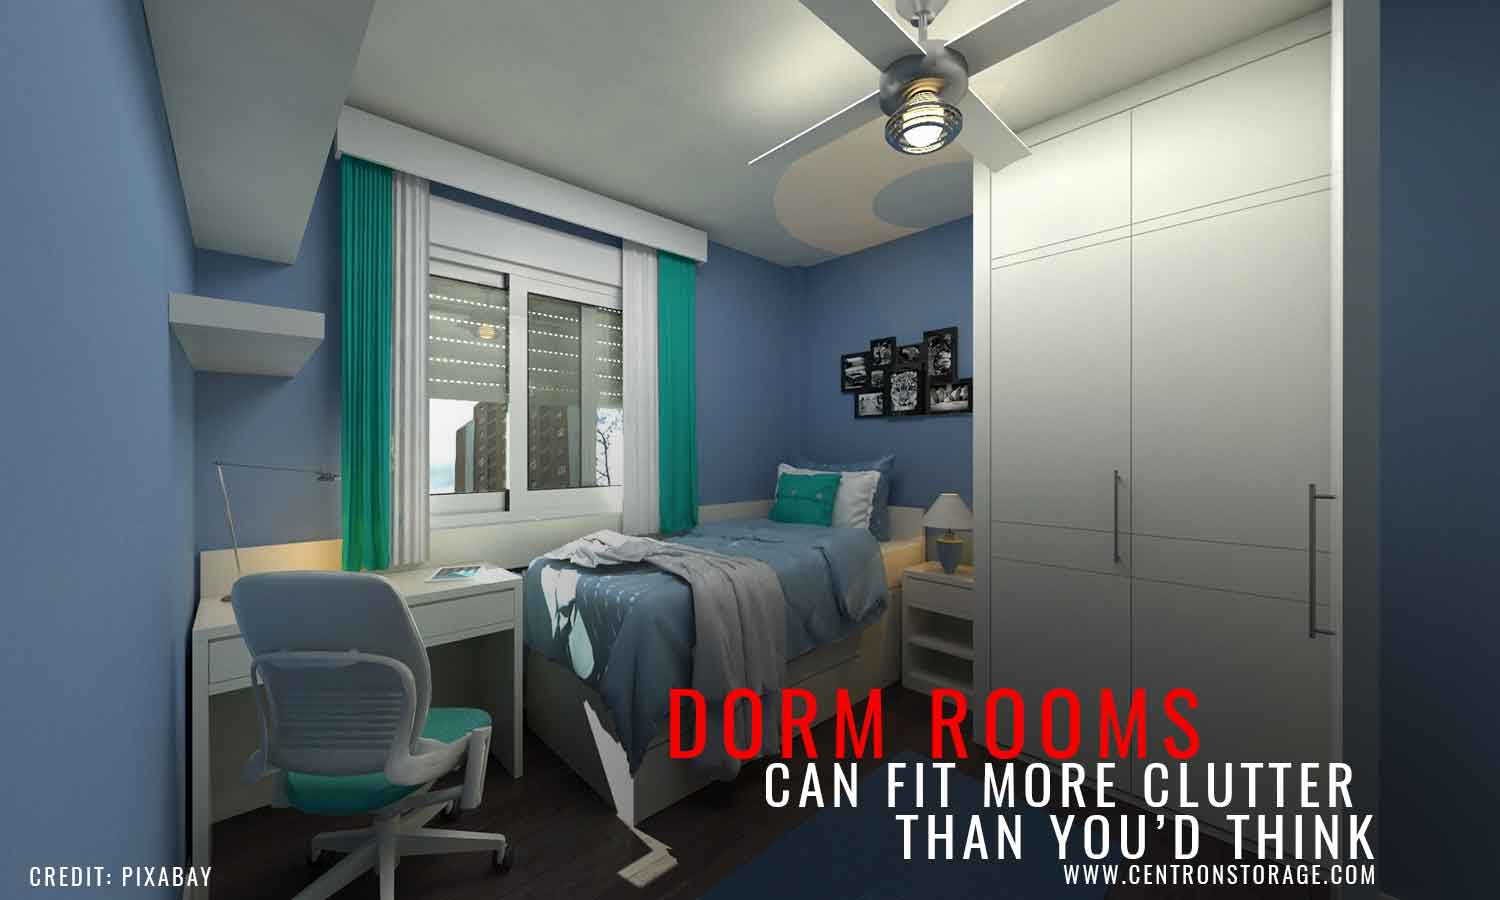 Dorm rooms can fit more clutter than you'd think